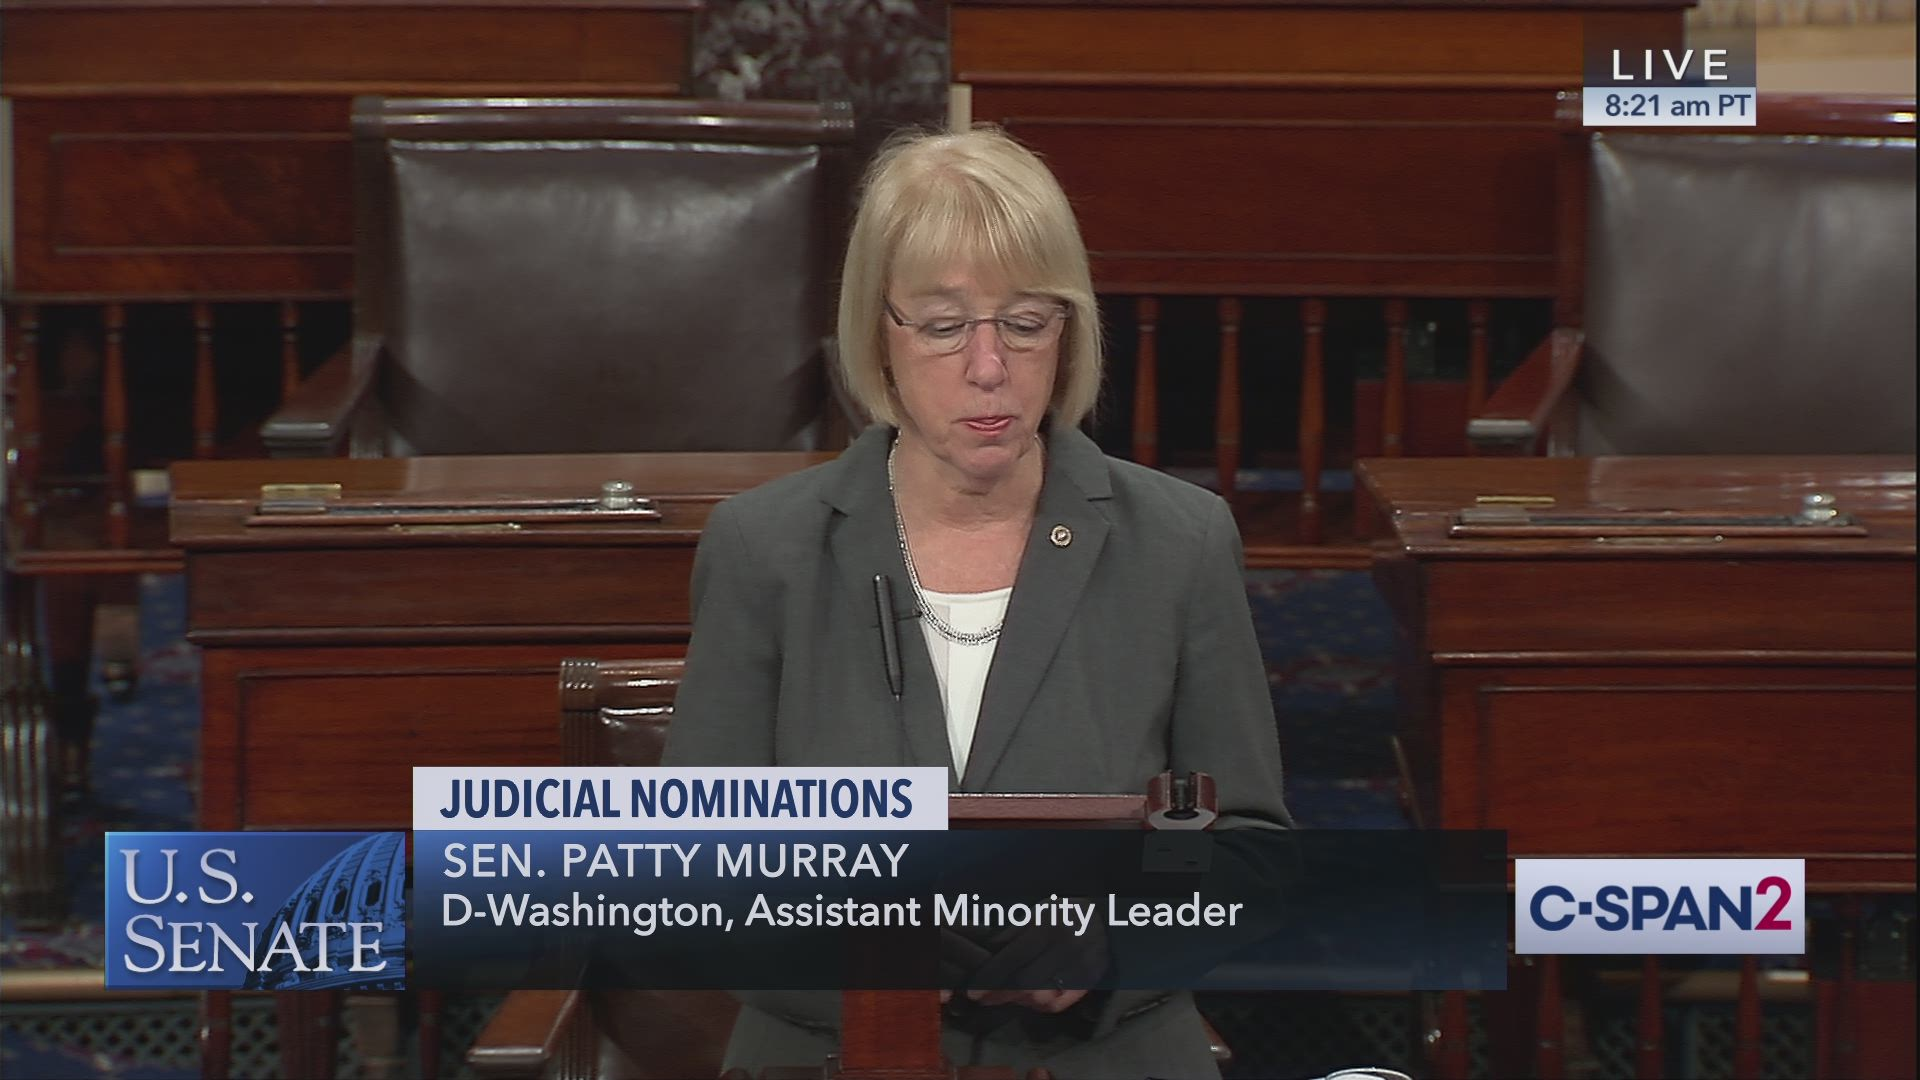 Senate Calendar December 2020 And Defense Nomintions Sen Patty Murray on AL Pro Life Bill and Wendy Vitter | C SPAN.org